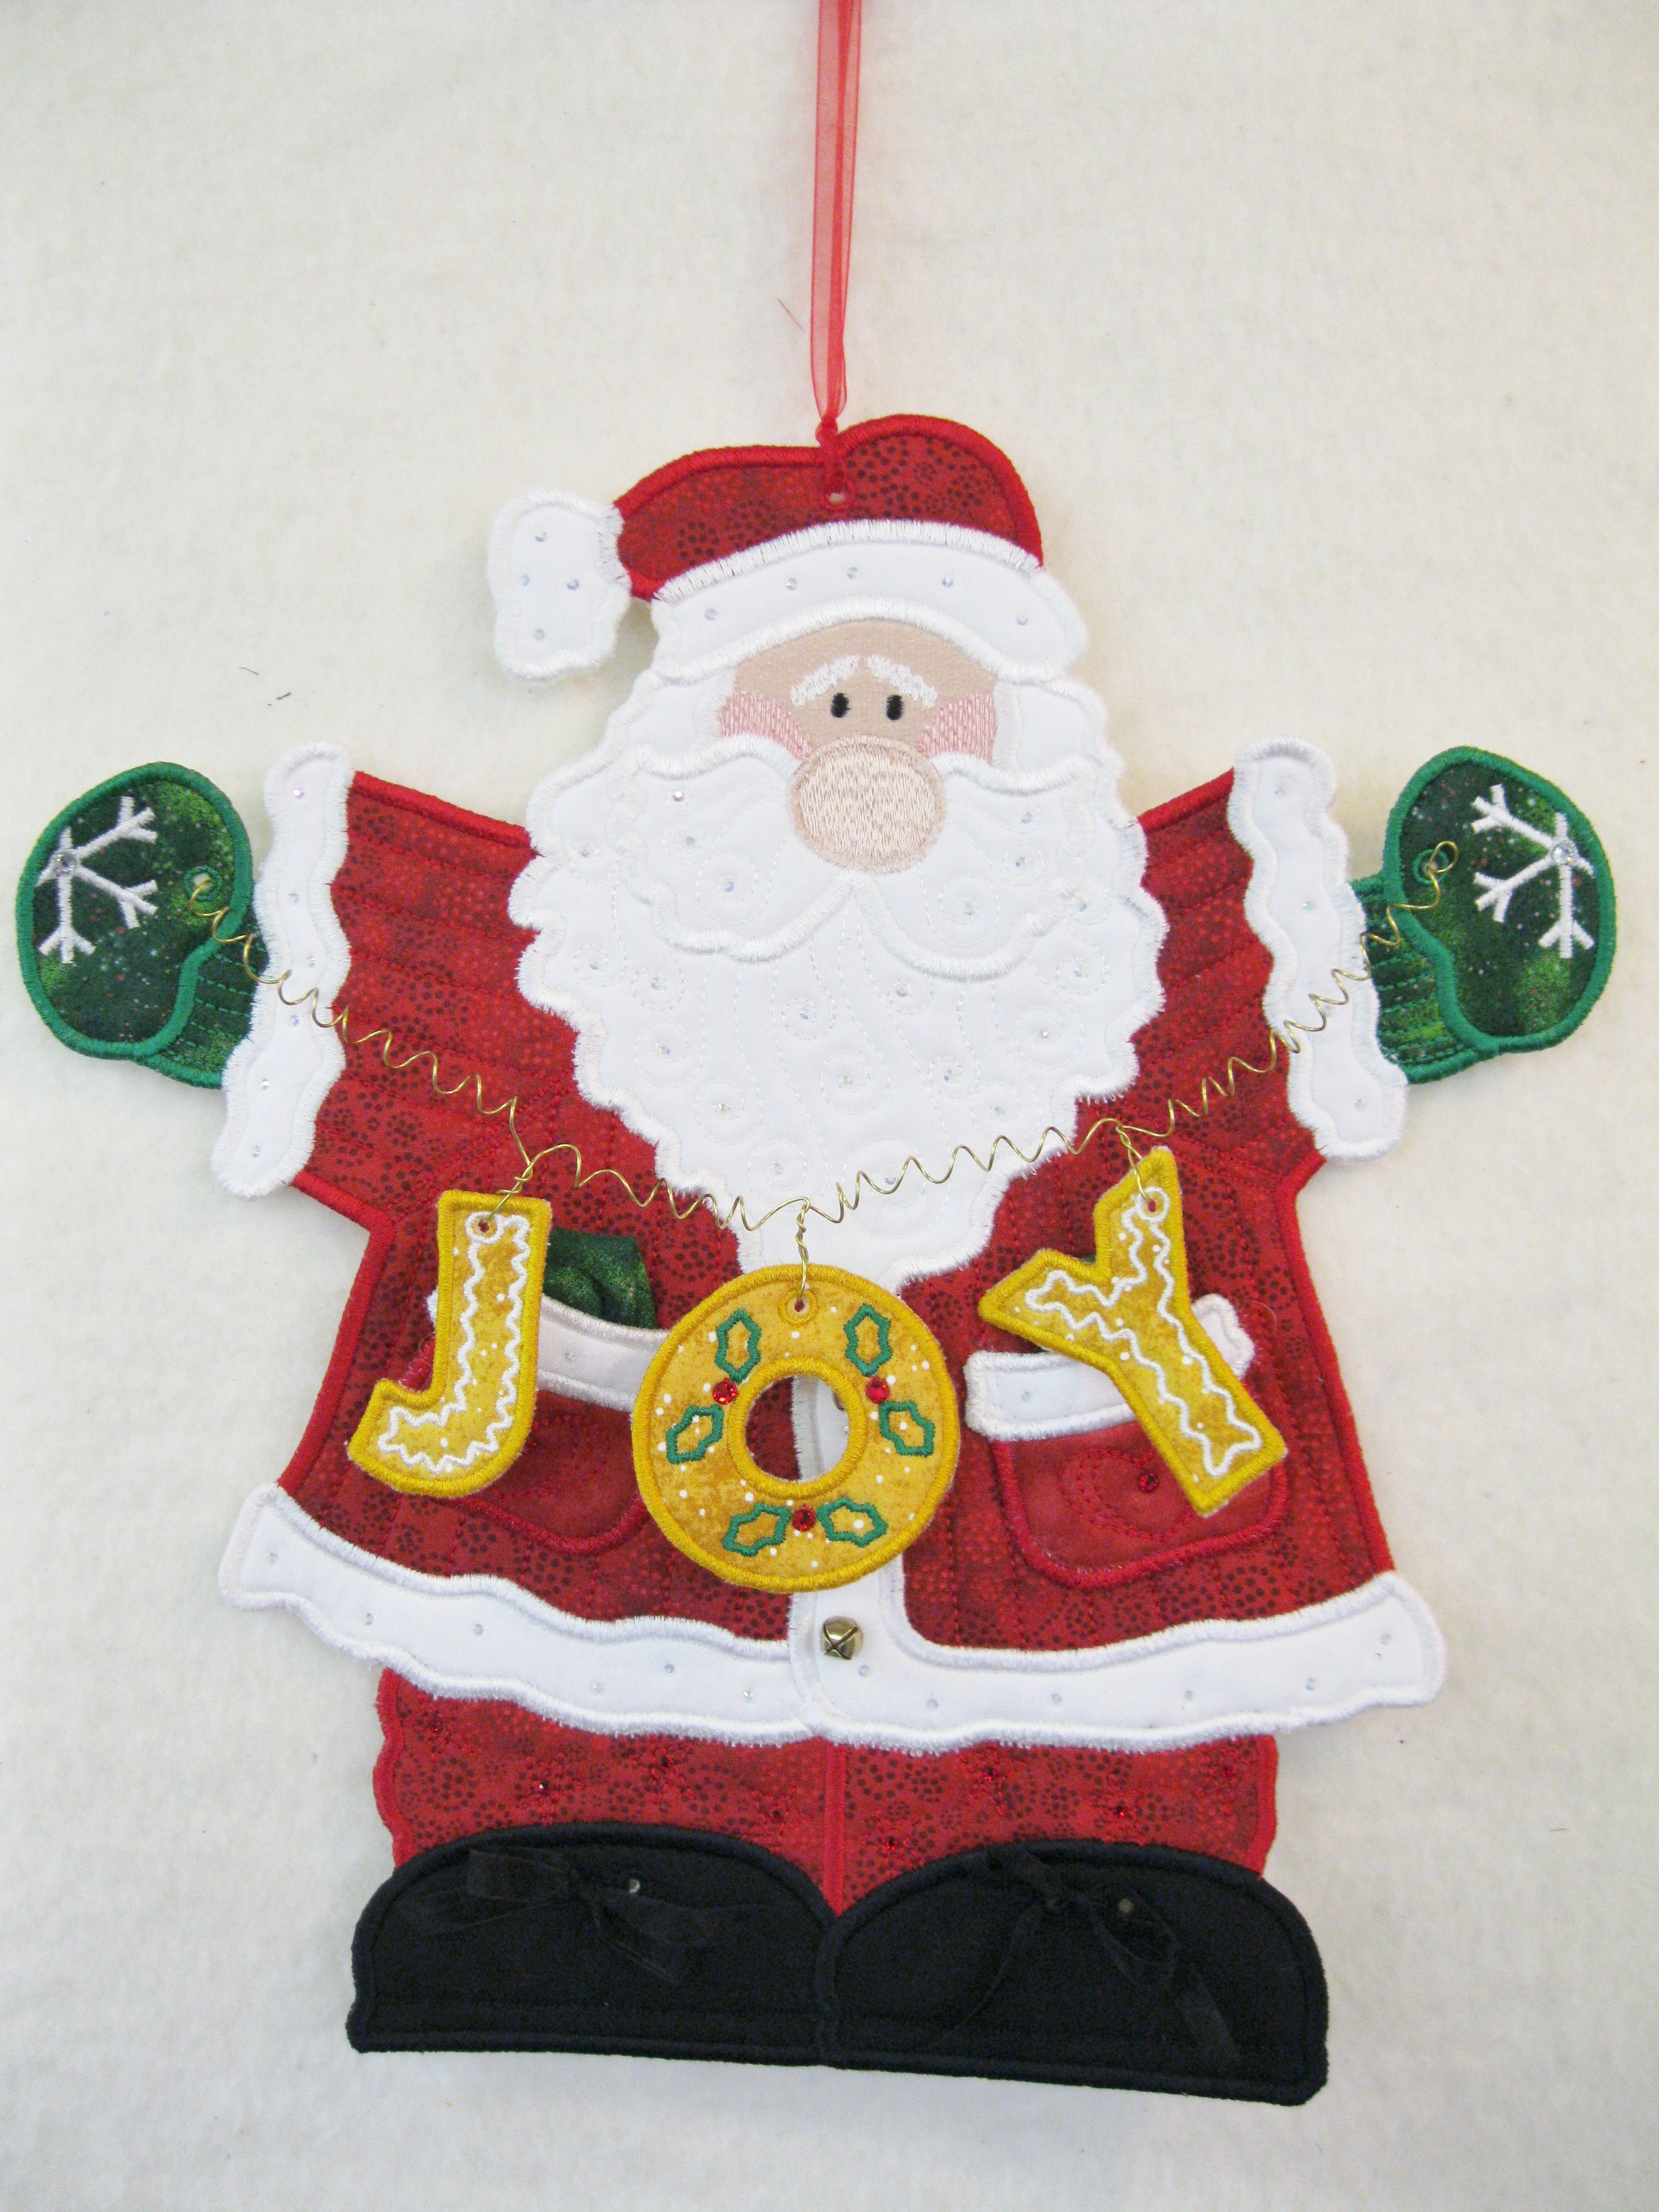 Joy Boy By Embroidered Quilting By KC | Embroidery Items | Pinterest